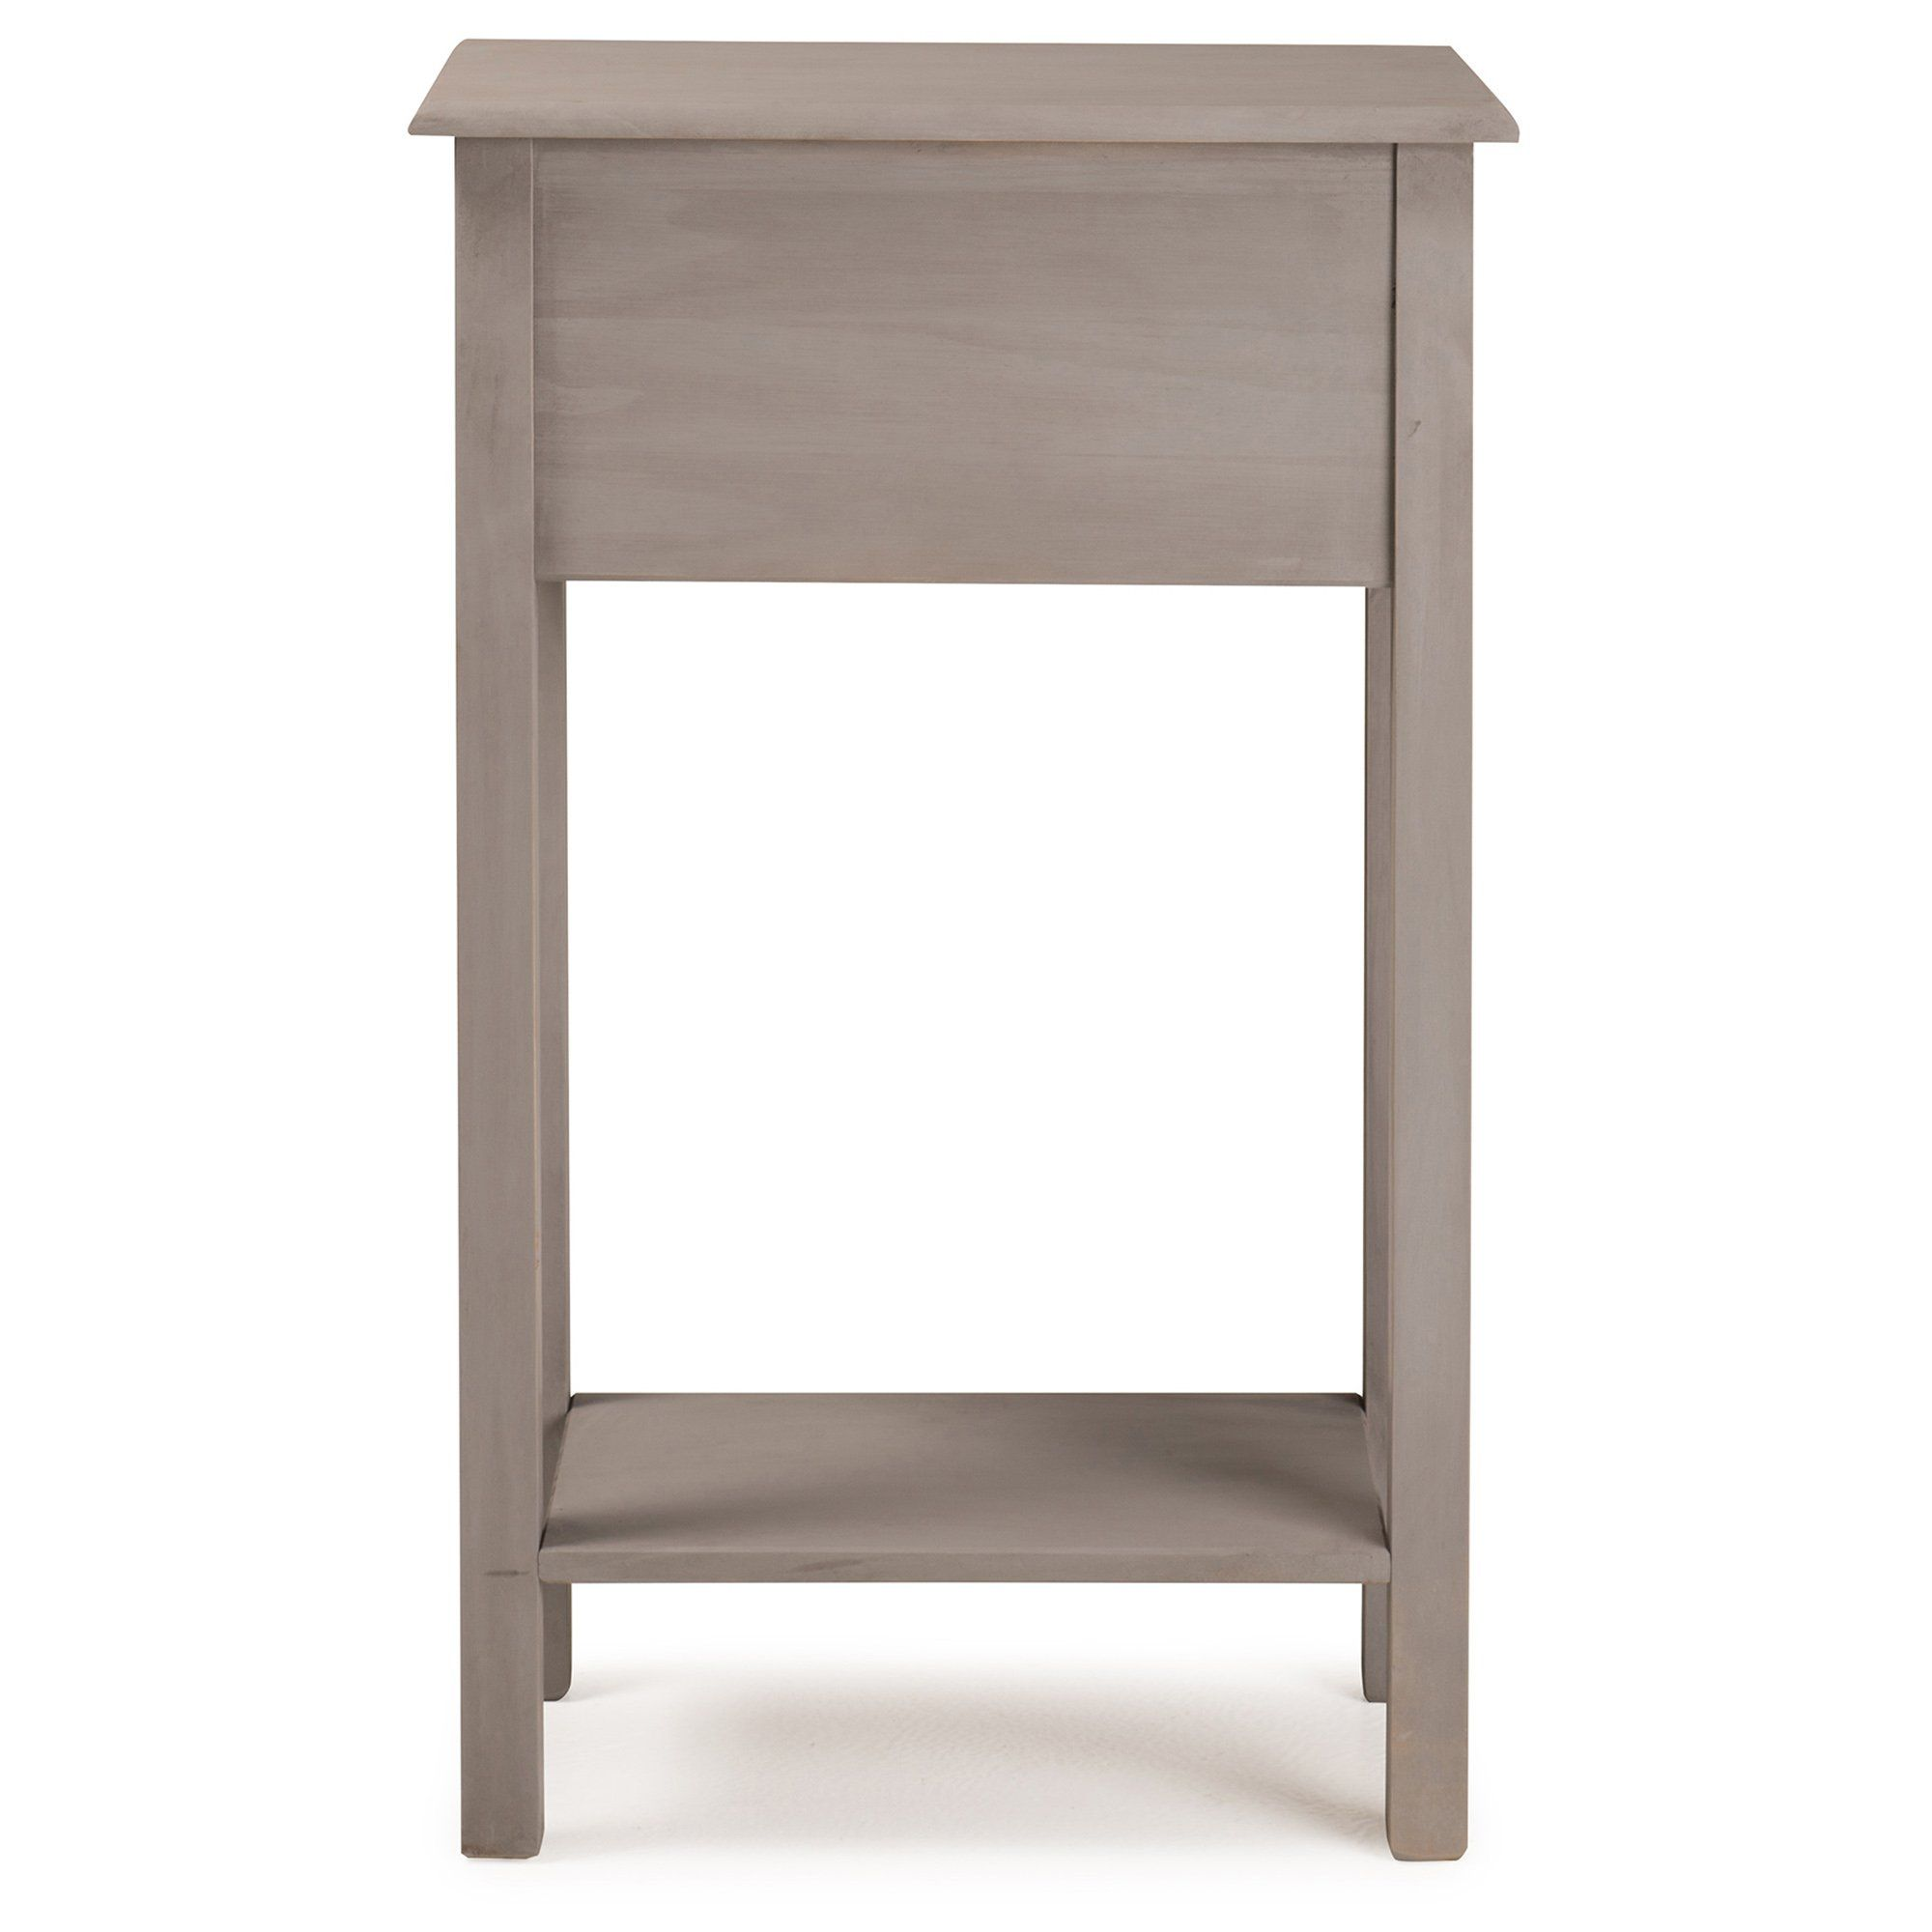 manhattan comfort jay collection modern wooden accent end table with wood one drawer and shelf white more info could found the url hampton bay spring haven pier chairs acrylic